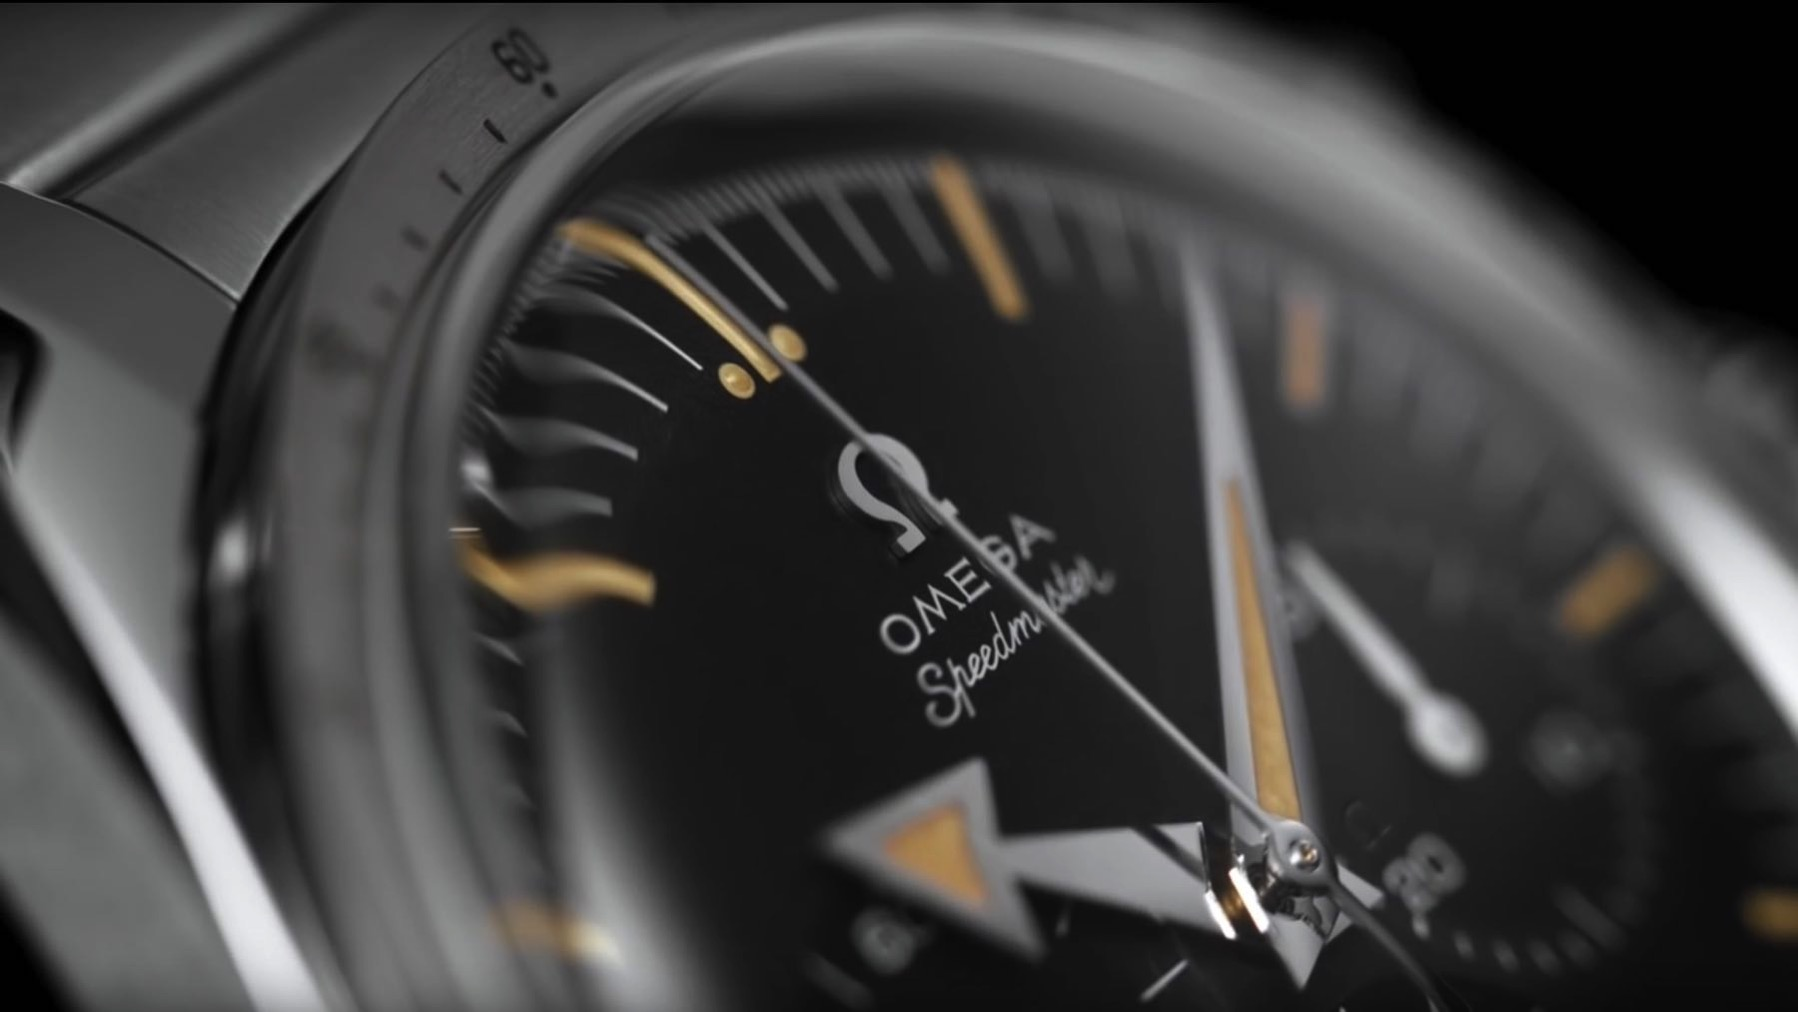 07 OMEGA 1957 Trilogy Limit Edition Speedmaster